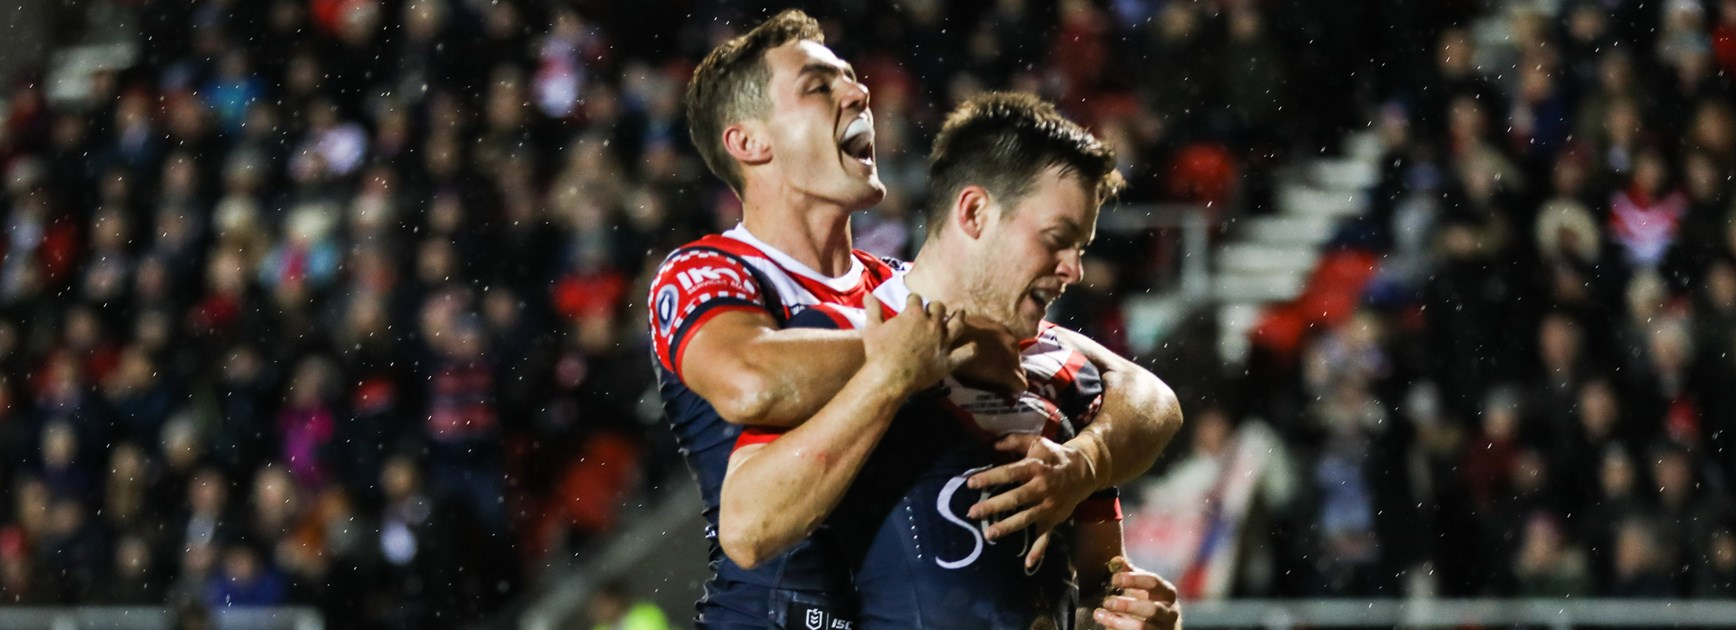 Luke Keary writes... Why I'm blown away by Flanagan